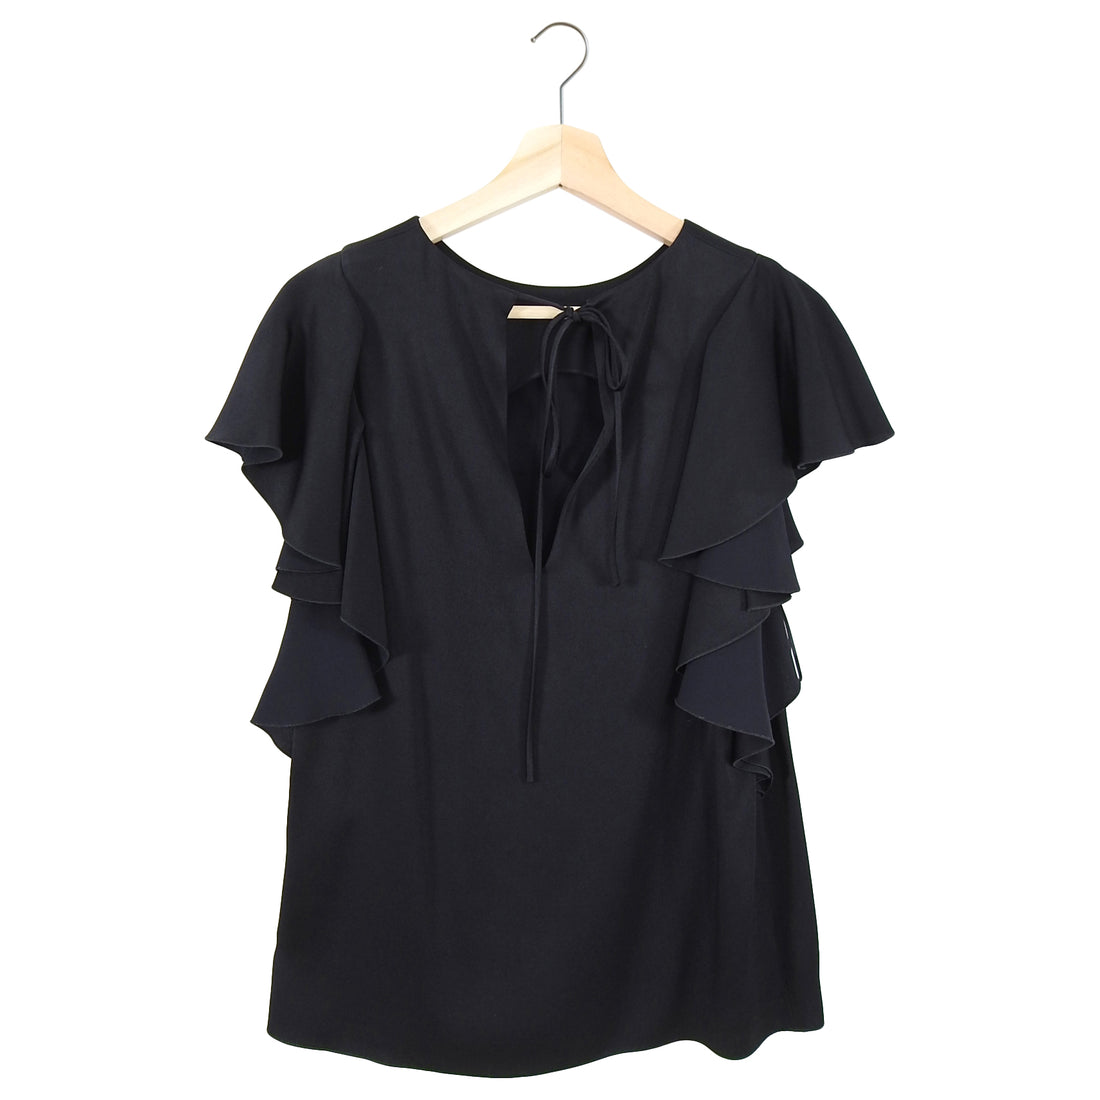 Lanvin Black Ruffle Sleeve Rayon Top - FR38 / 6